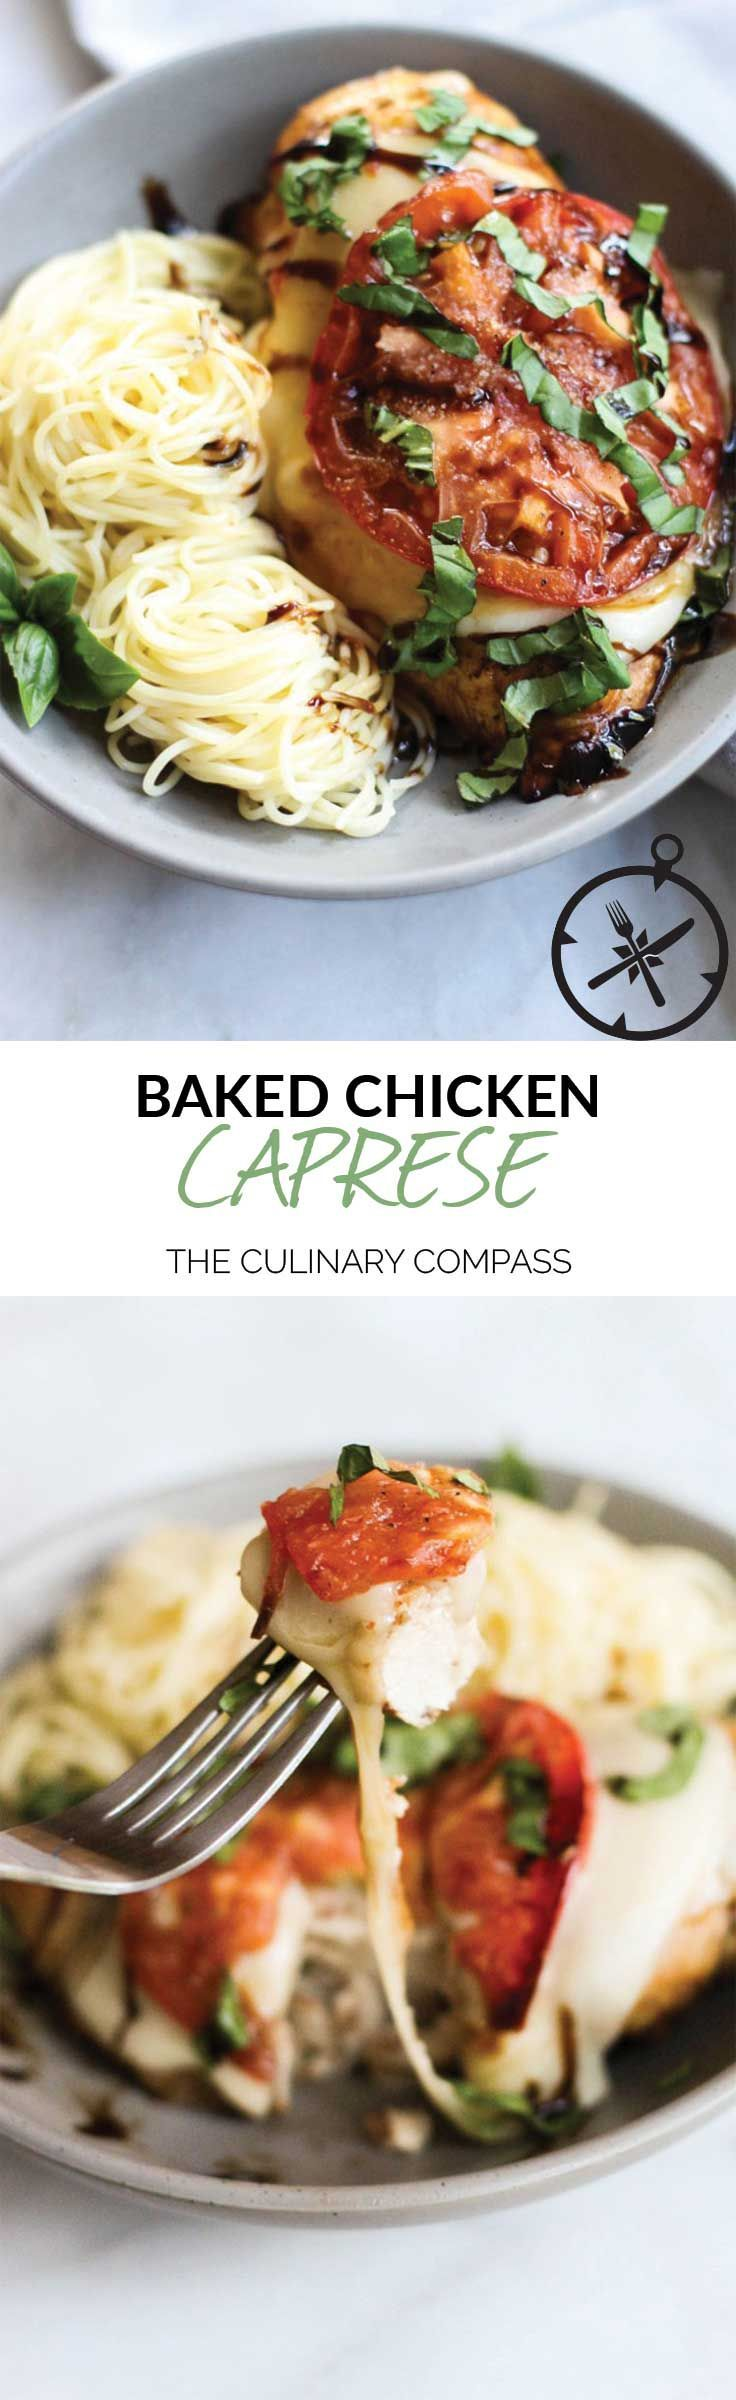 This Baked Chicken Caprese is full of bright summery flavors and is so easy to throw together! via /culinarycompass/